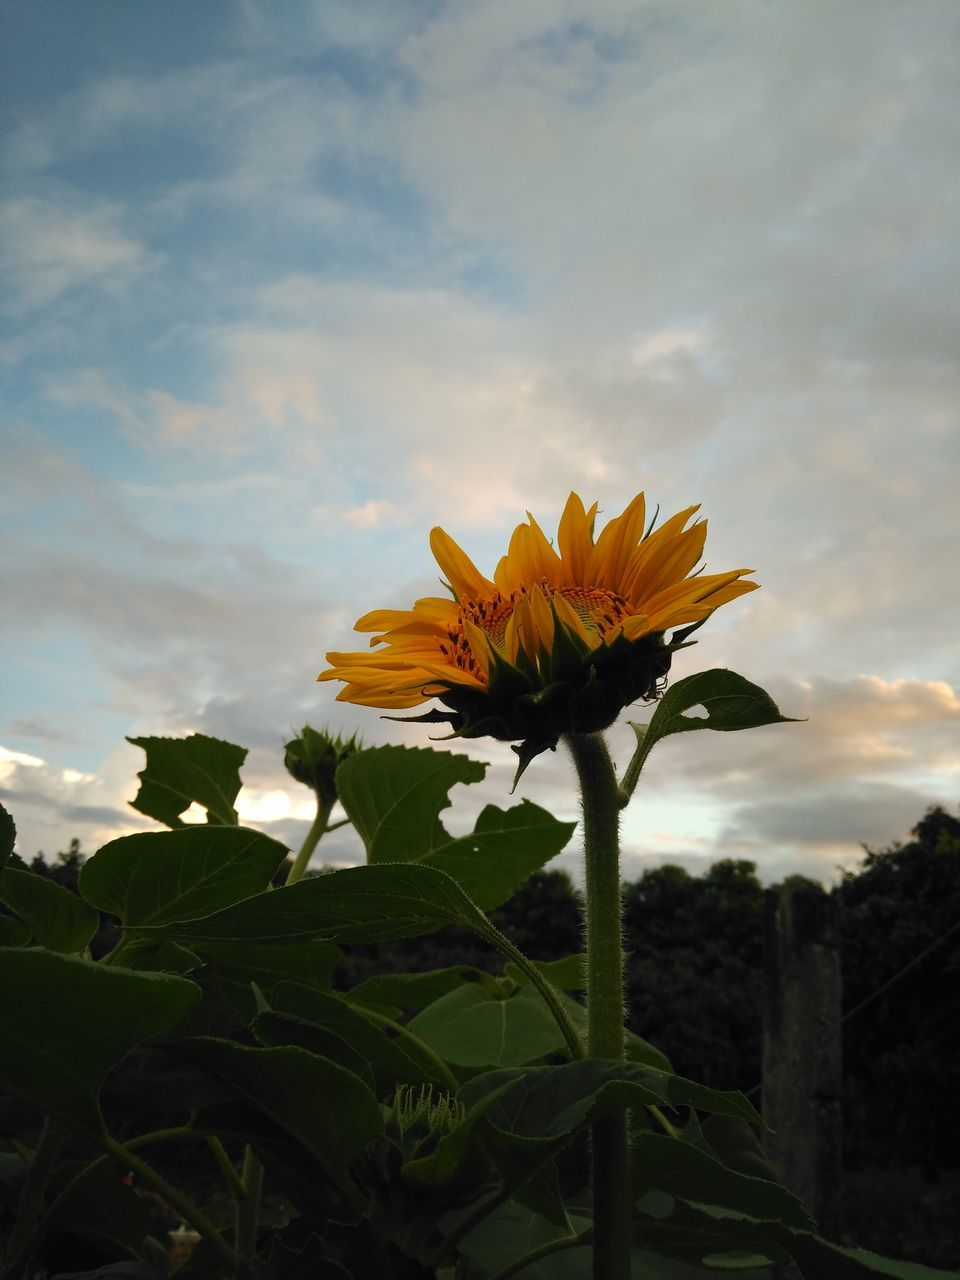 flower, nature, beauty in nature, sky, fragility, cloud - sky, growth, petal, plant, outdoors, no people, freshness, flower head, leaf, yellow, low angle view, sunflower, blooming, day, sunset, close-up